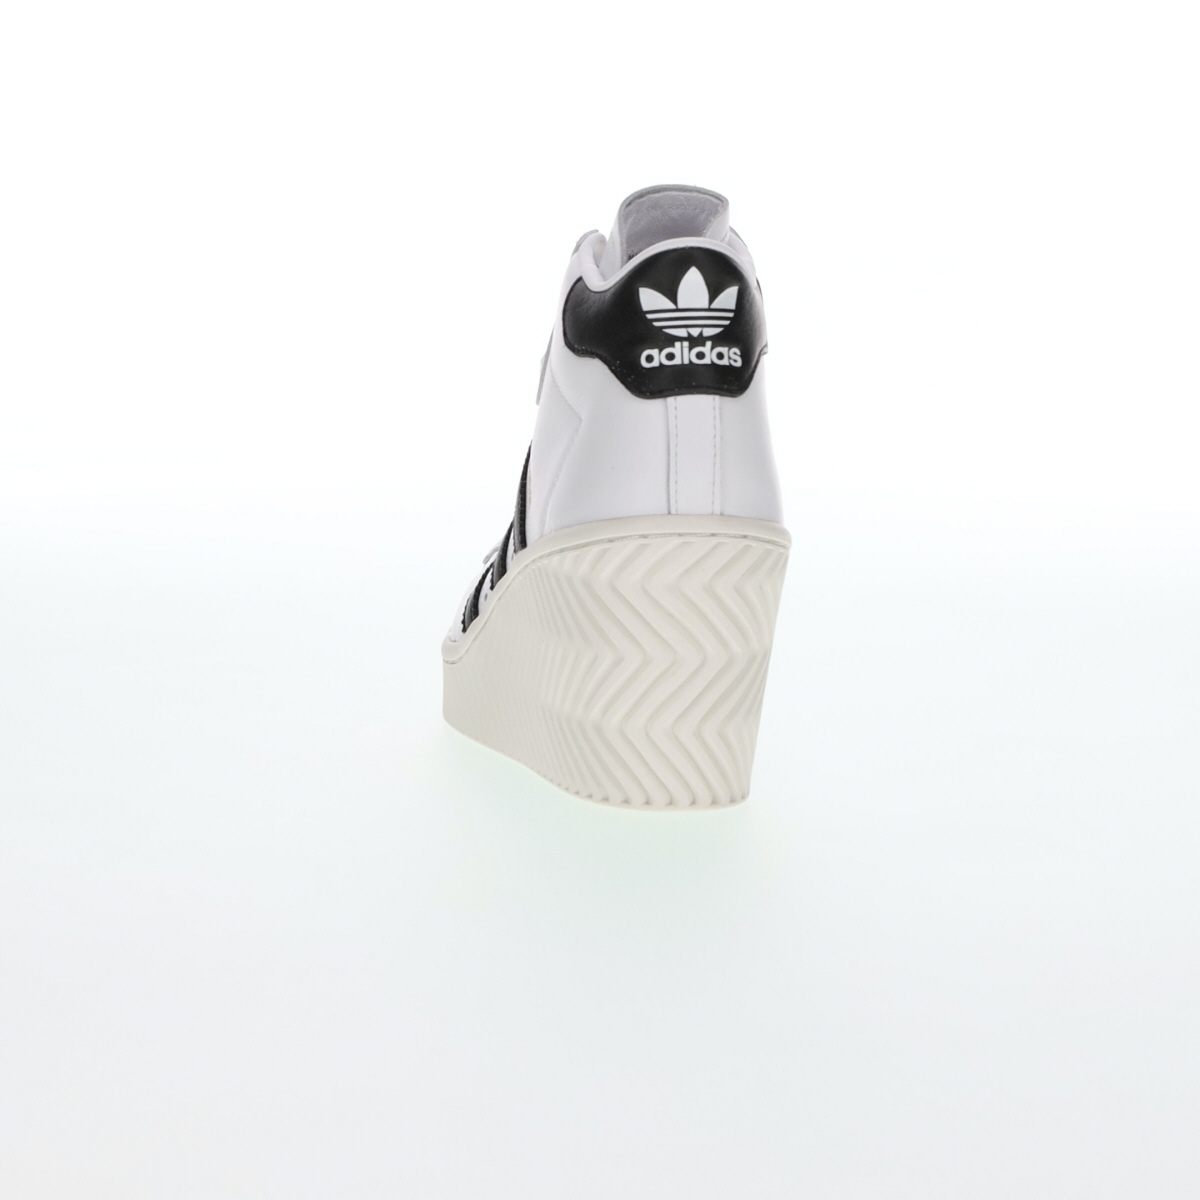 adidas leather slides for women sale sandals